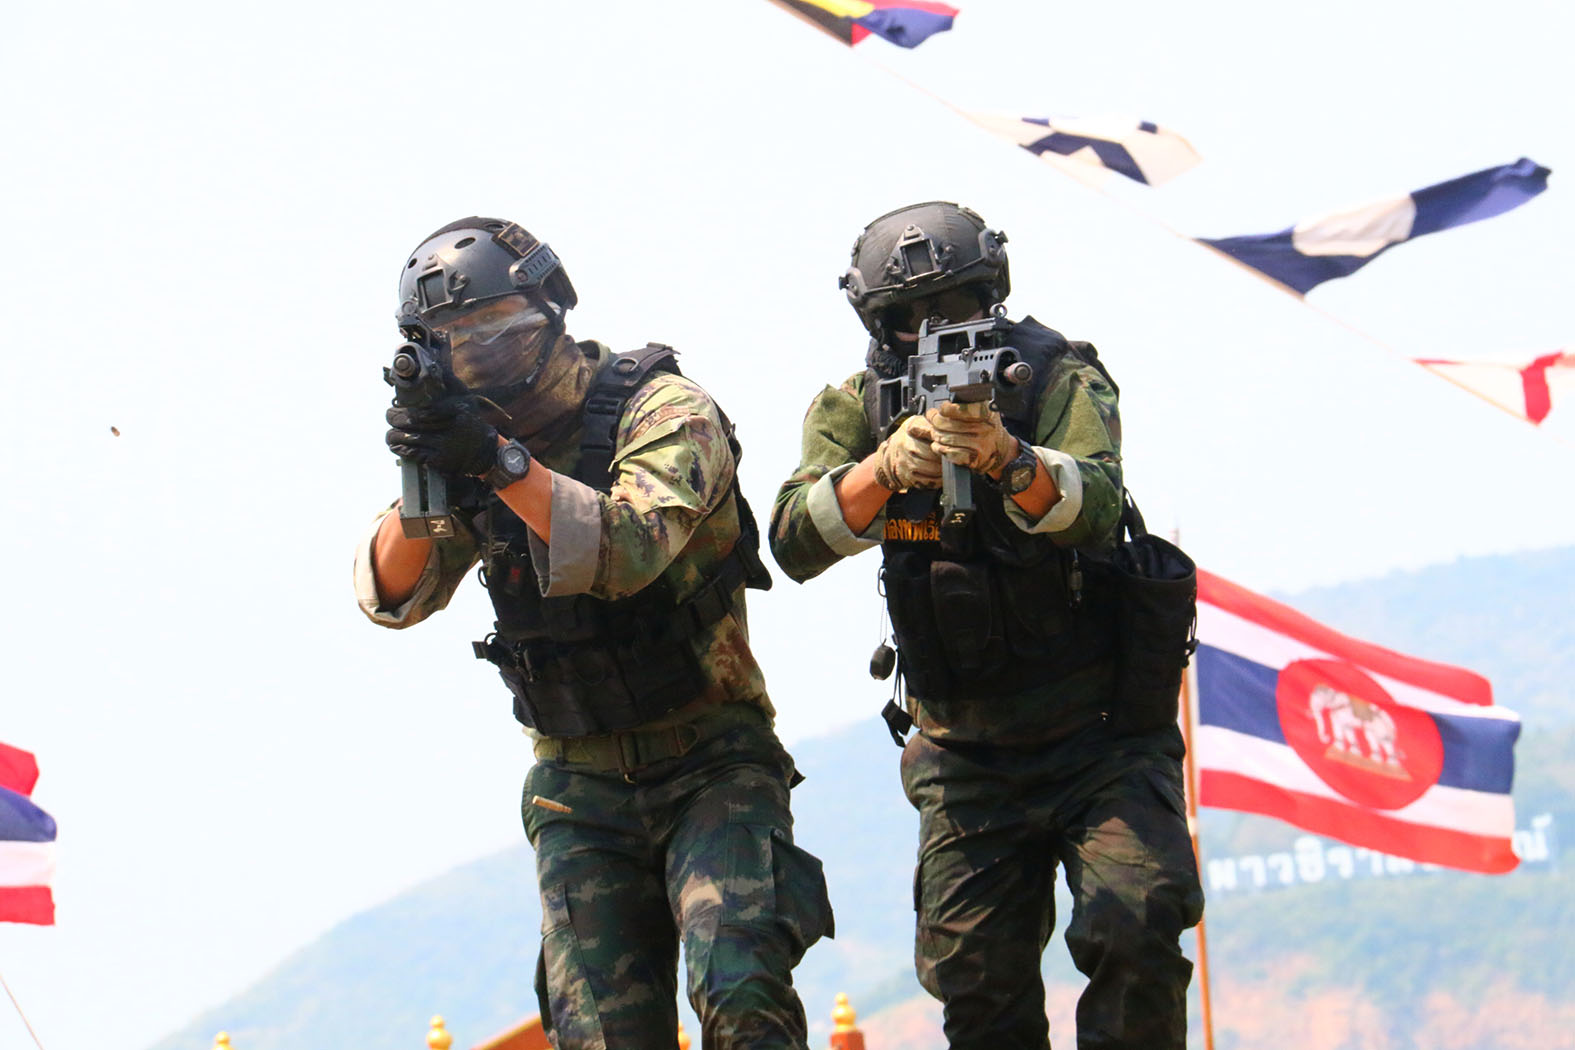 The Royal Thai Navy tested joint tactical squadron training, including live ammunition drills at the annual Professional Navy Training Day in Sattahip.